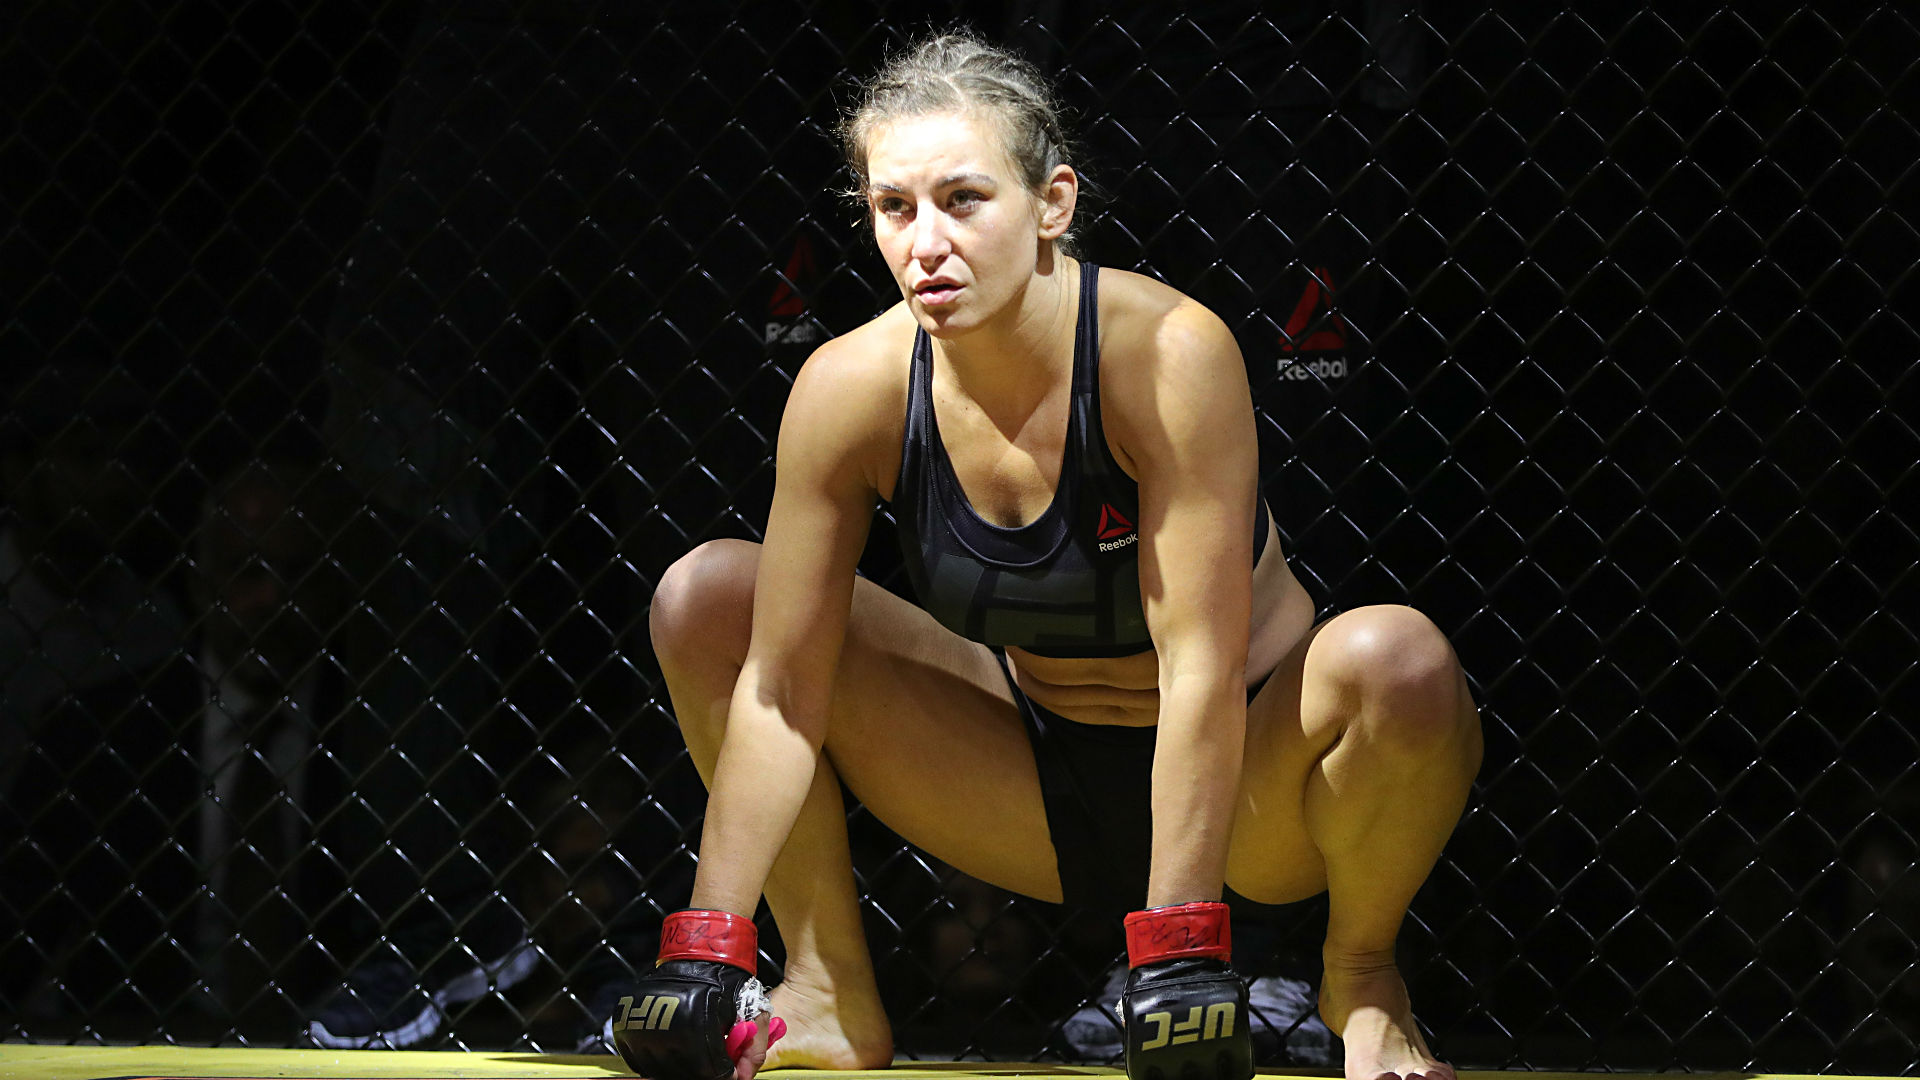 Miesha Tate Desktop wallpaper